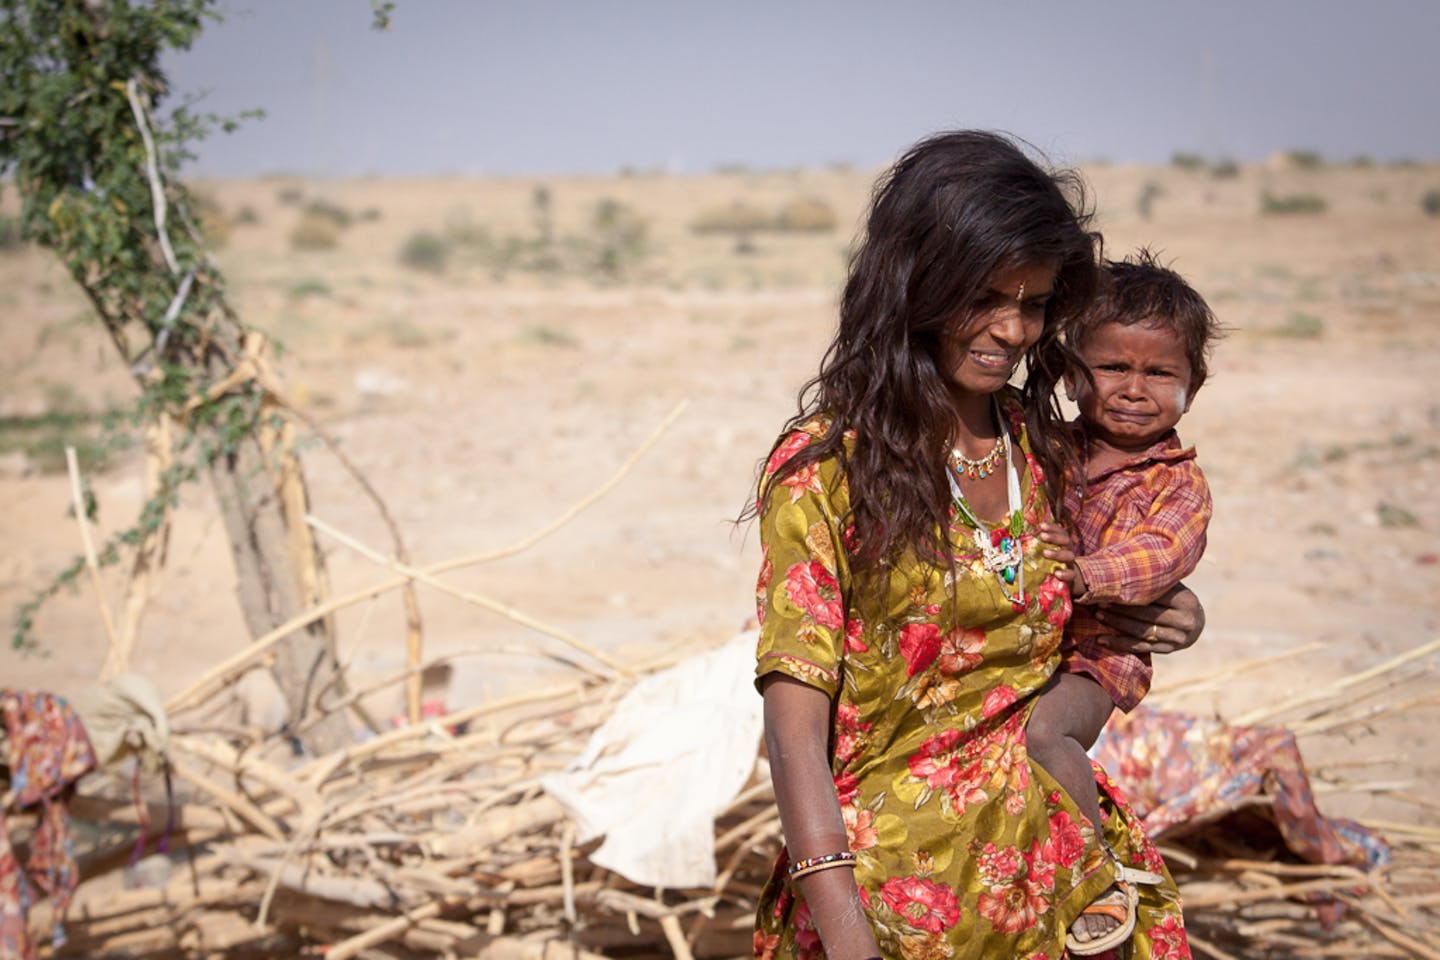 Mother and child in the Thar desert, India